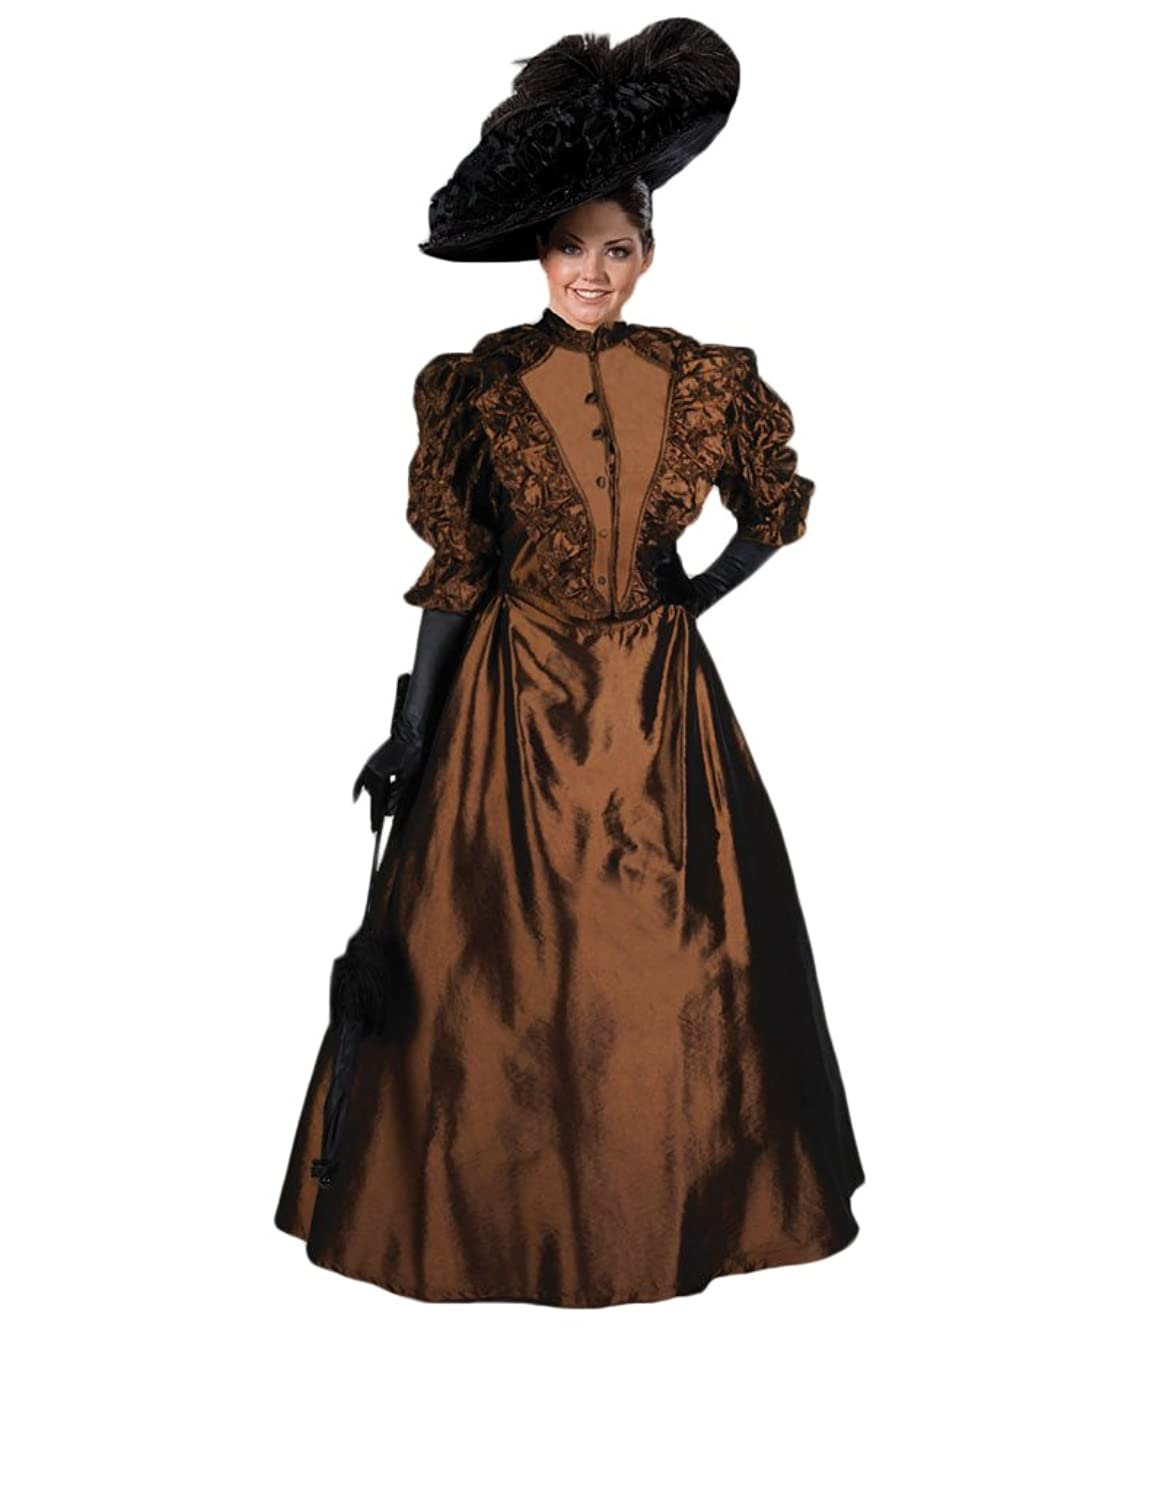 Victorian Costumes: Dresses, Saloon Girls, Southern Belle, Witch  Victorian Era Annie Dress Theater Costume $379.99 AT vintagedancer.com